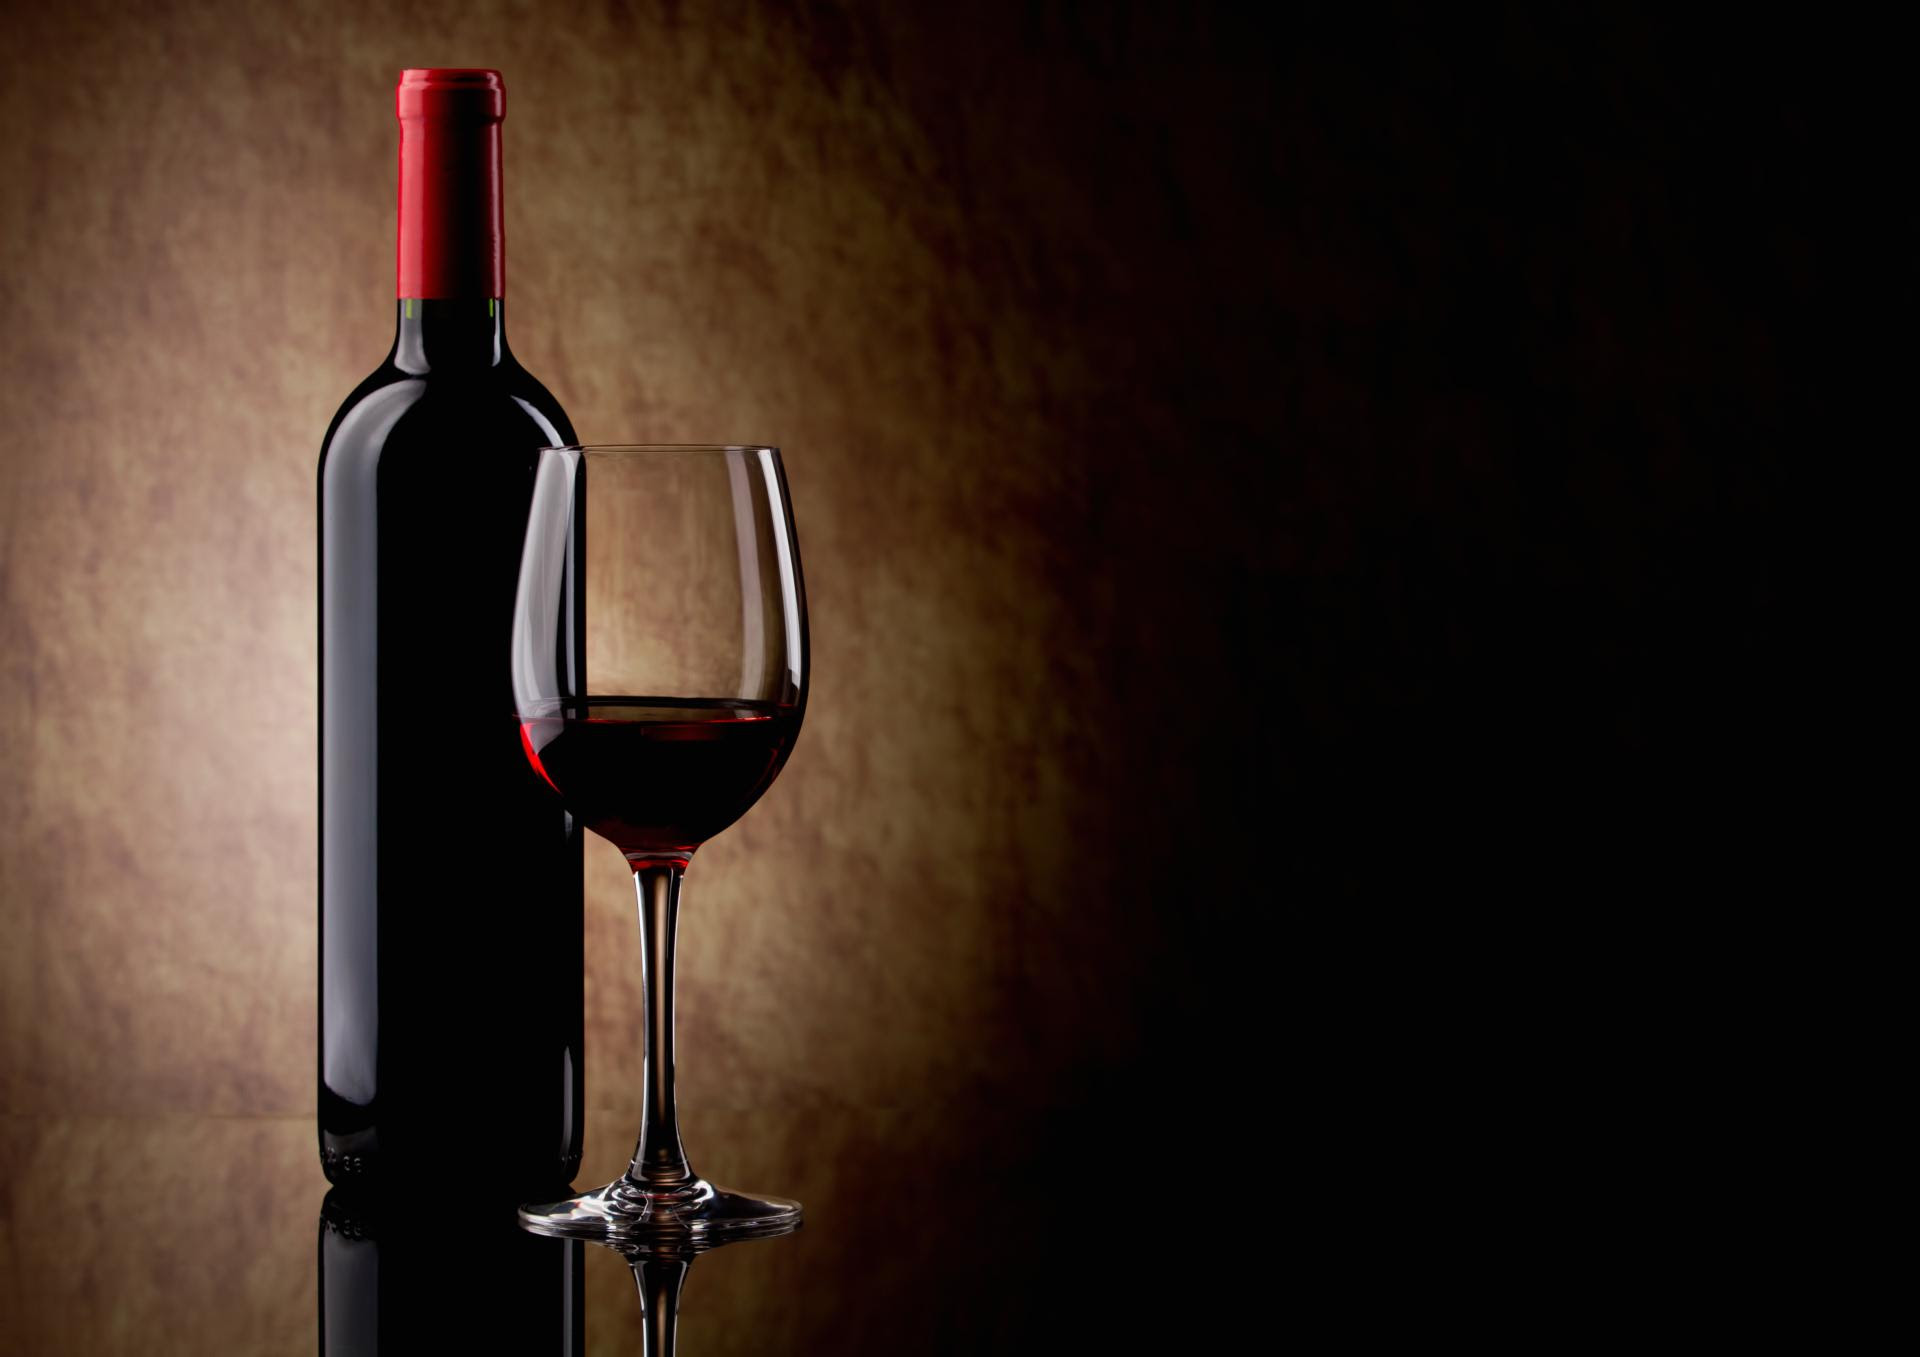 You Can Join Over 11000 Others In Enrolling In Free Online Wine Course